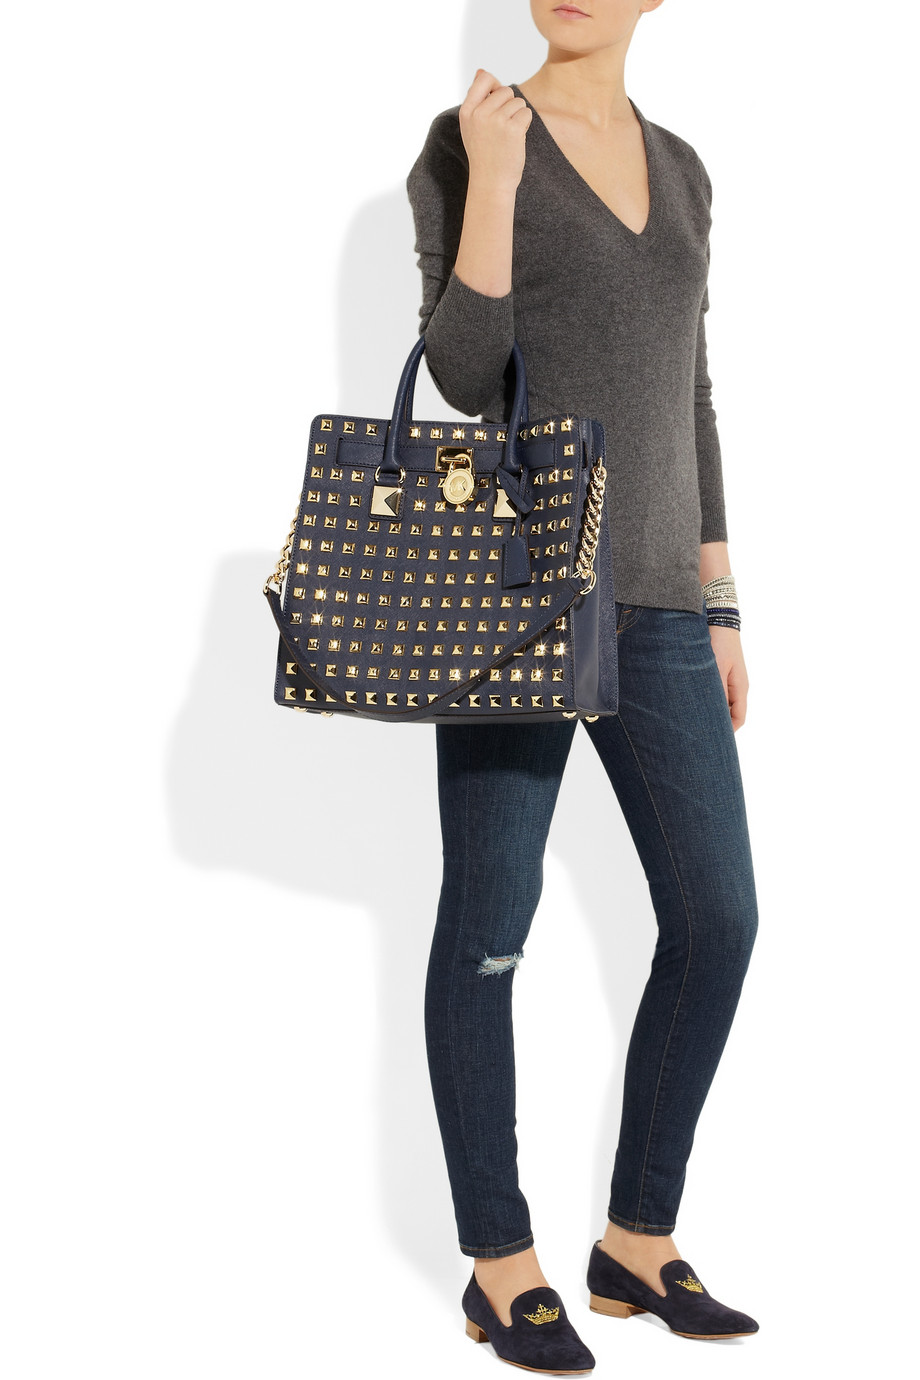 Must Have. Michael Kors Black Hamilton Tote, Plain or Studded